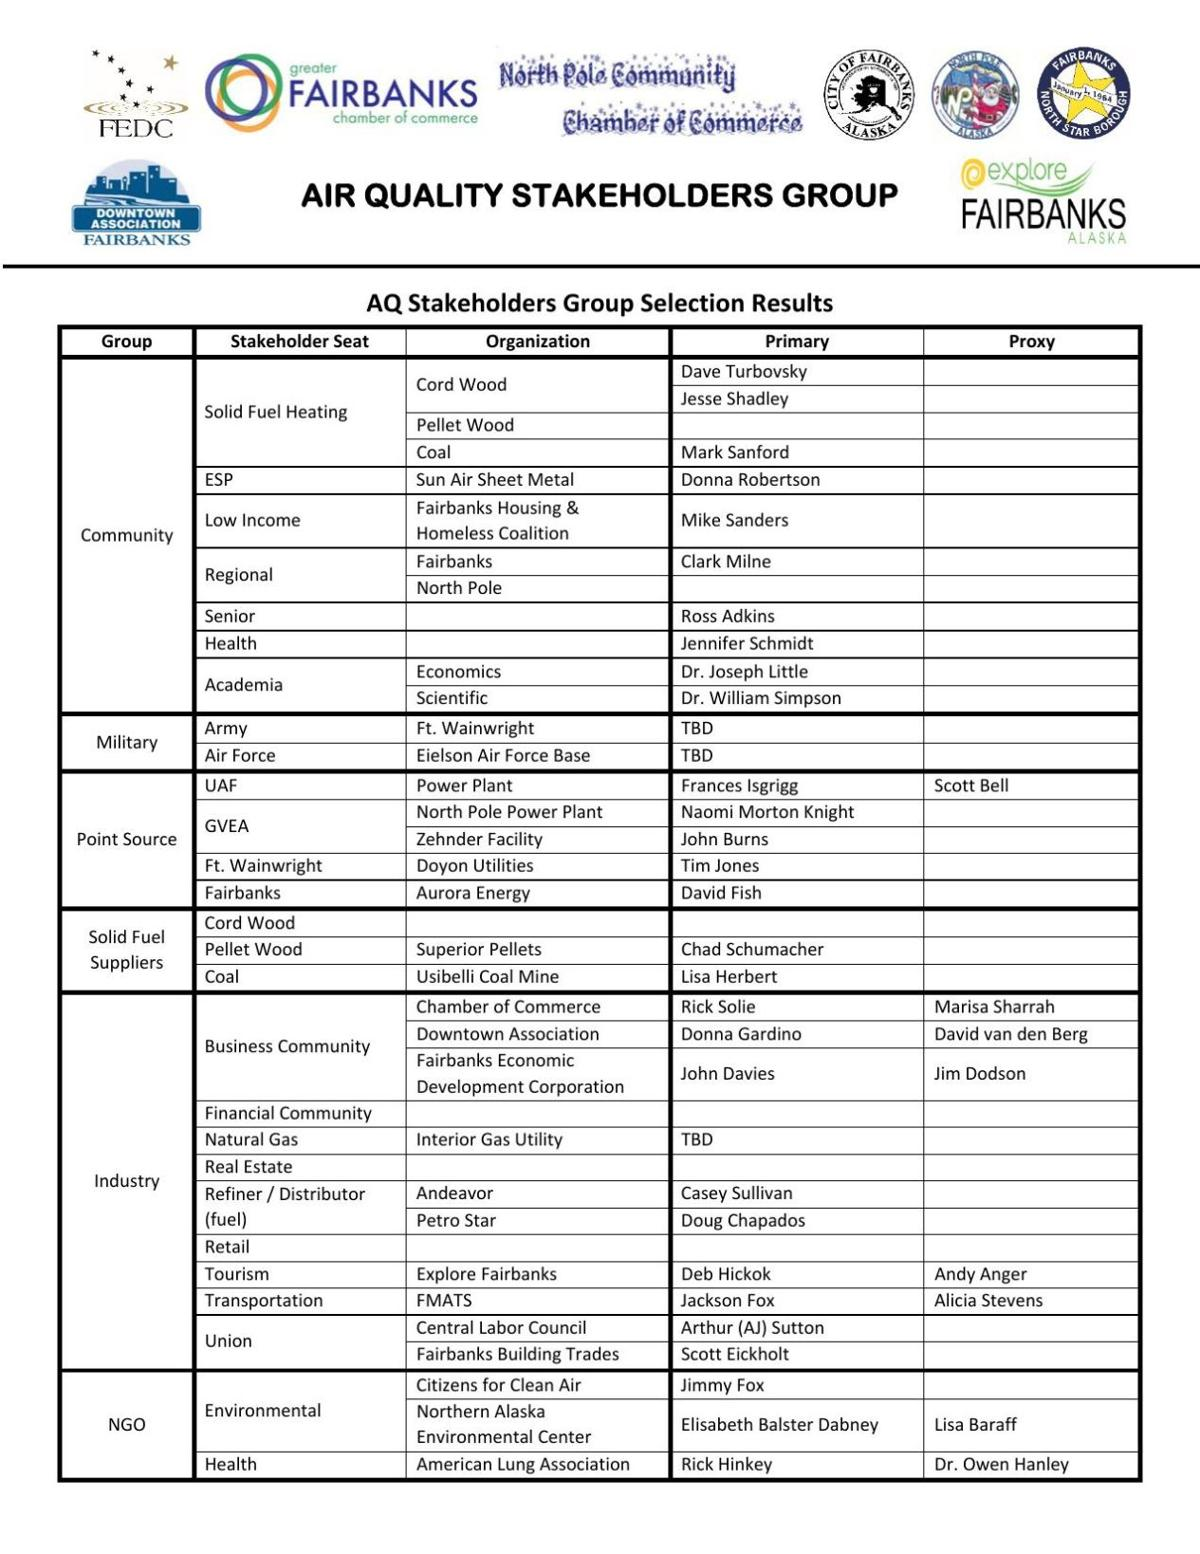 Air quality stakeholders group